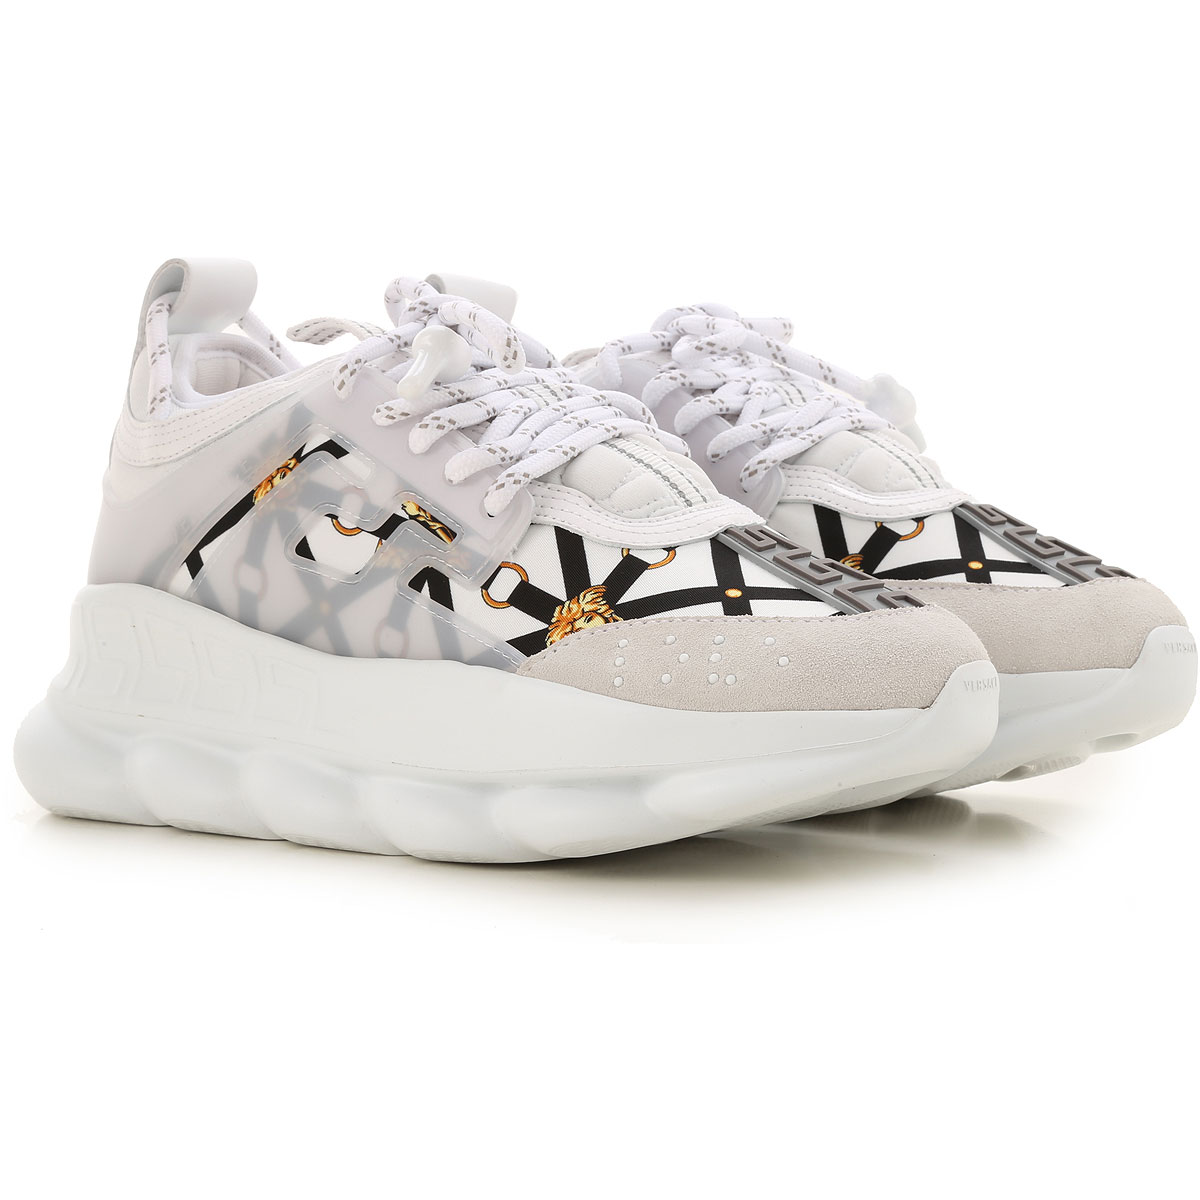 Gianni Versace Sneakers for Women On Sale, White, Leather, 2019, 10 11 5.5 6 7 8.5 9